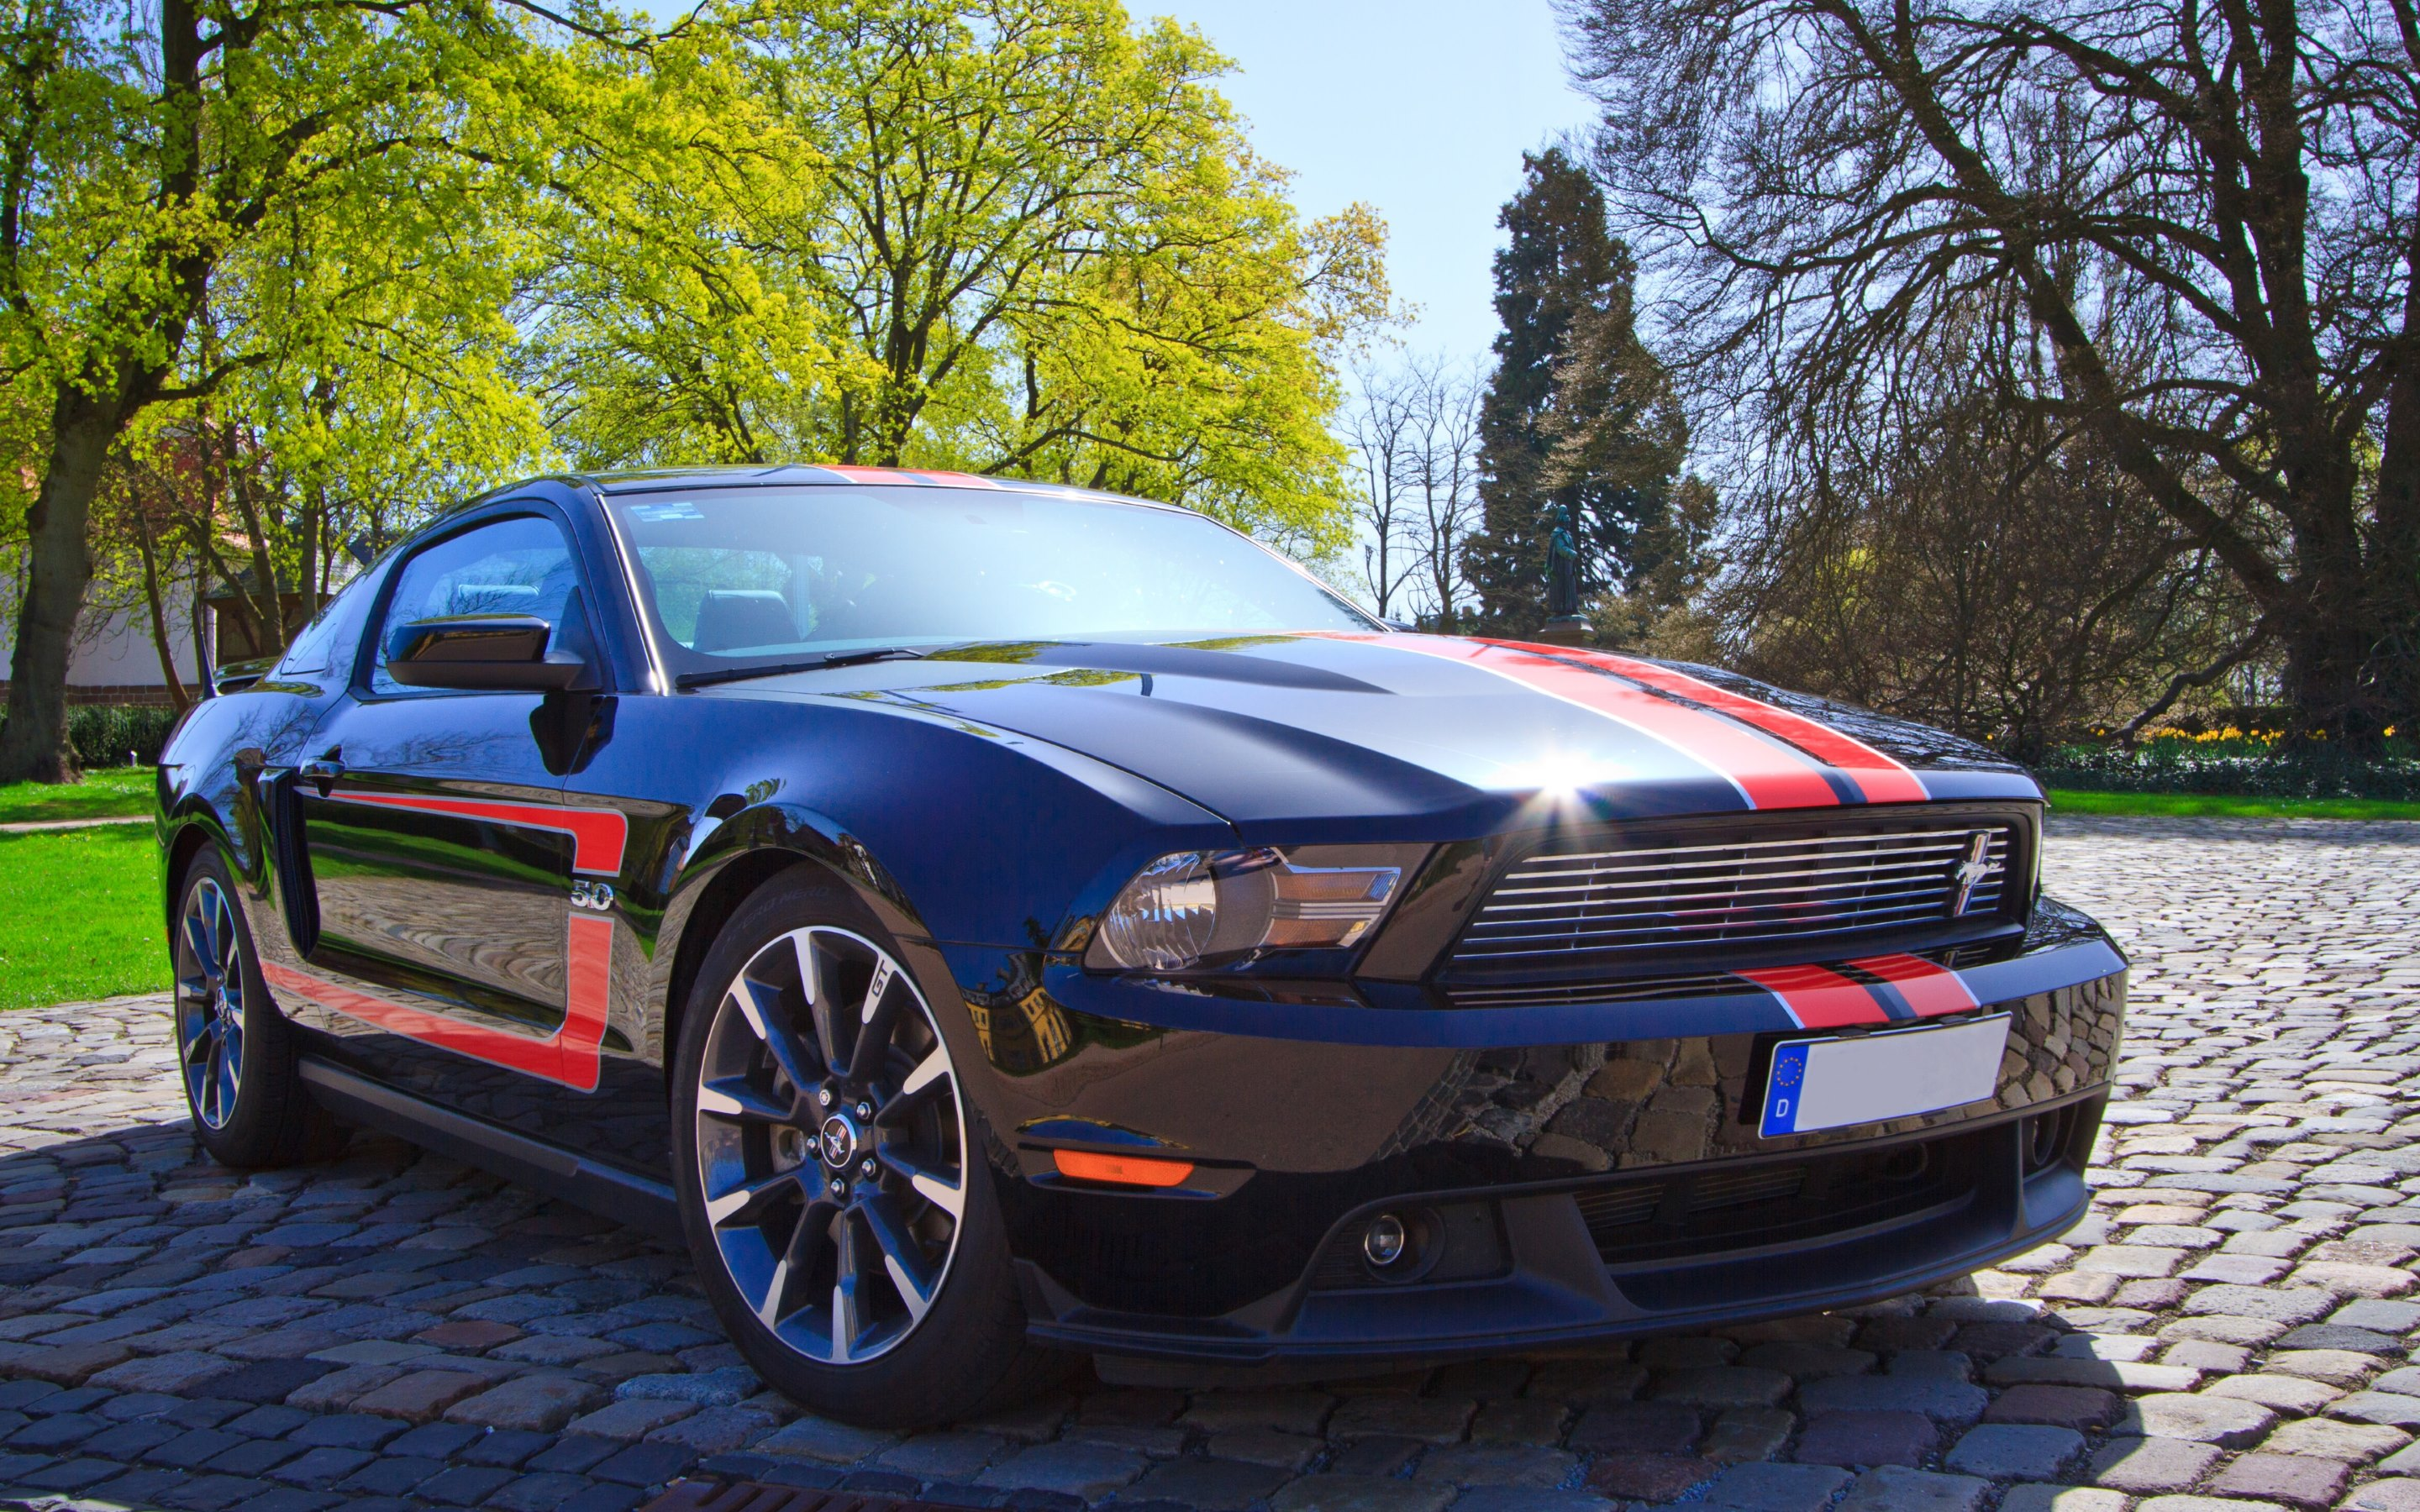 ford mustang gt sports car | hd wallpapers · 4k